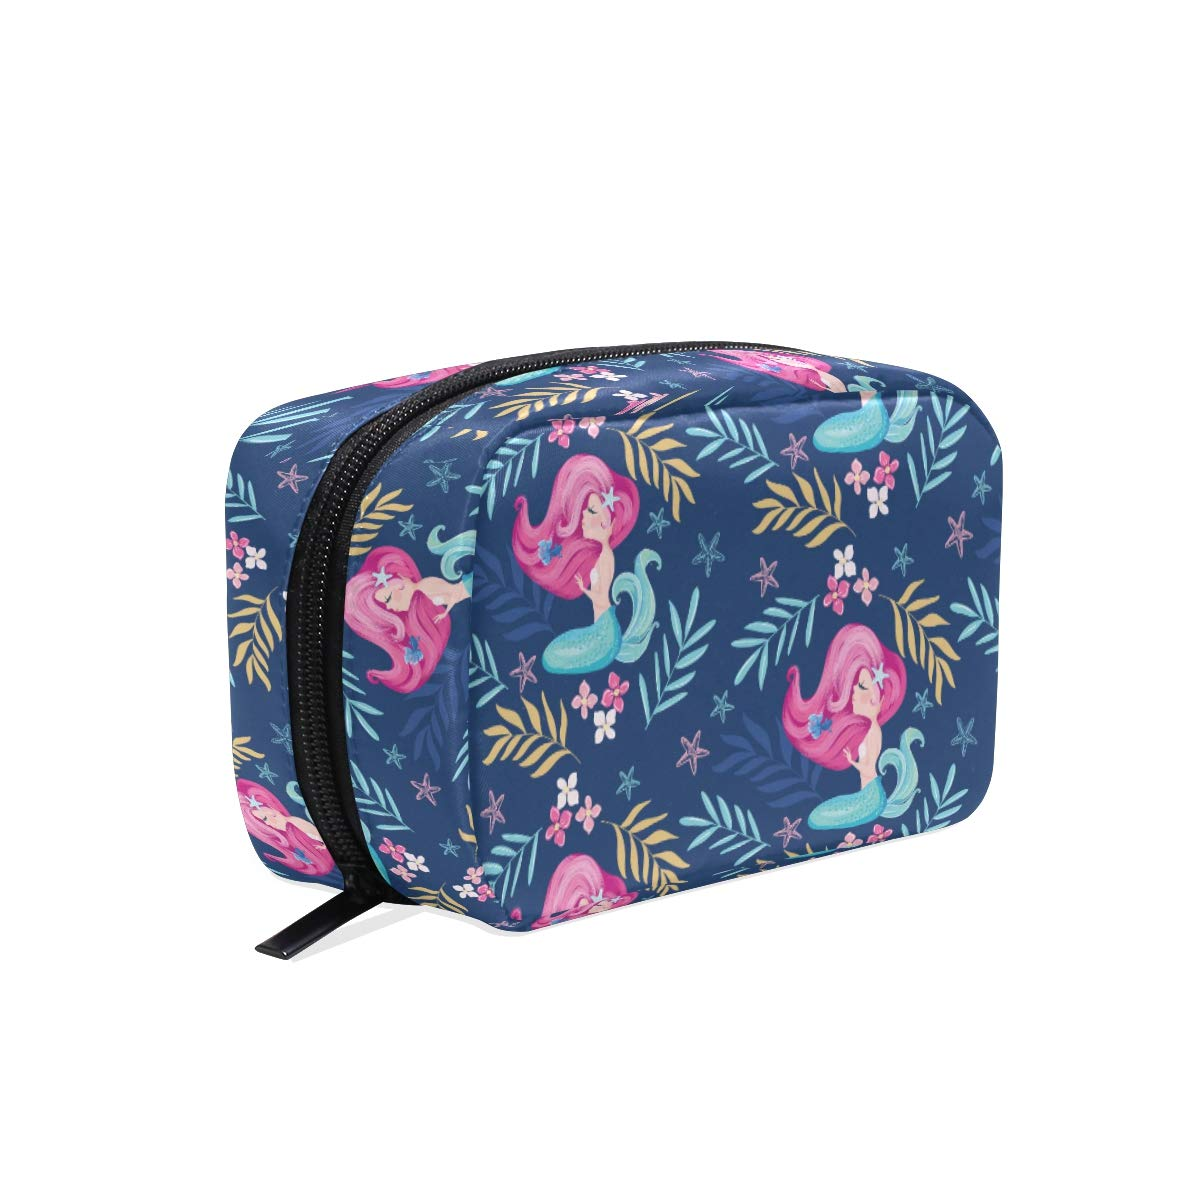 A Seed Cosmetic Bag Travel Makeup Case Cute Mermaid Navy Floral Flowers for Women Girls Toiletry Organizer Pouch Portable Handbag